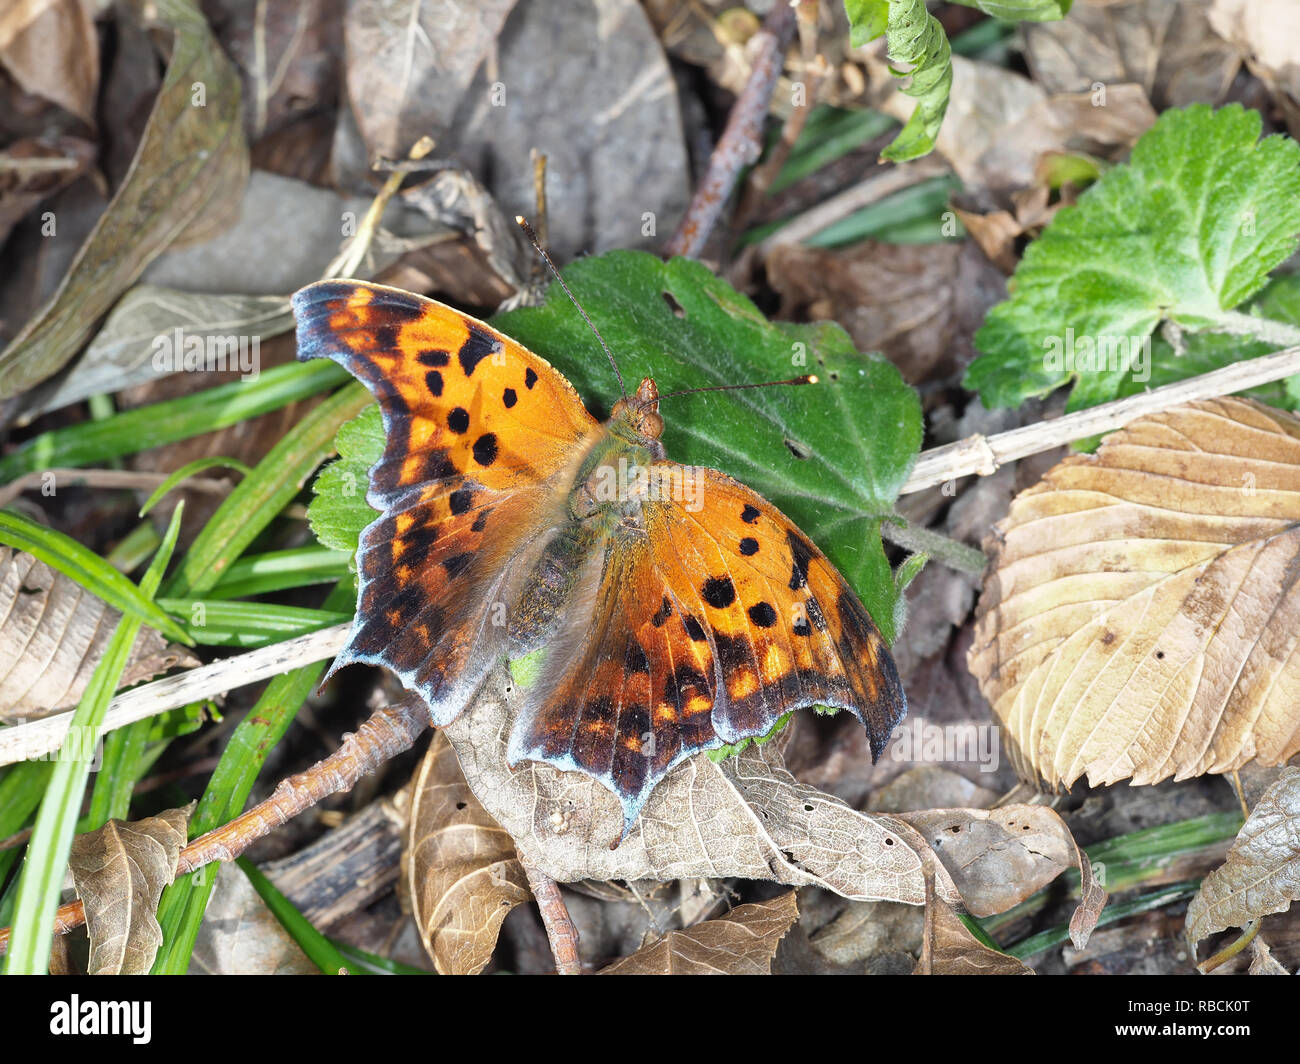 Polygonia interrogationis, the question mark butterfly, in November in Texas, USA - Stock Image